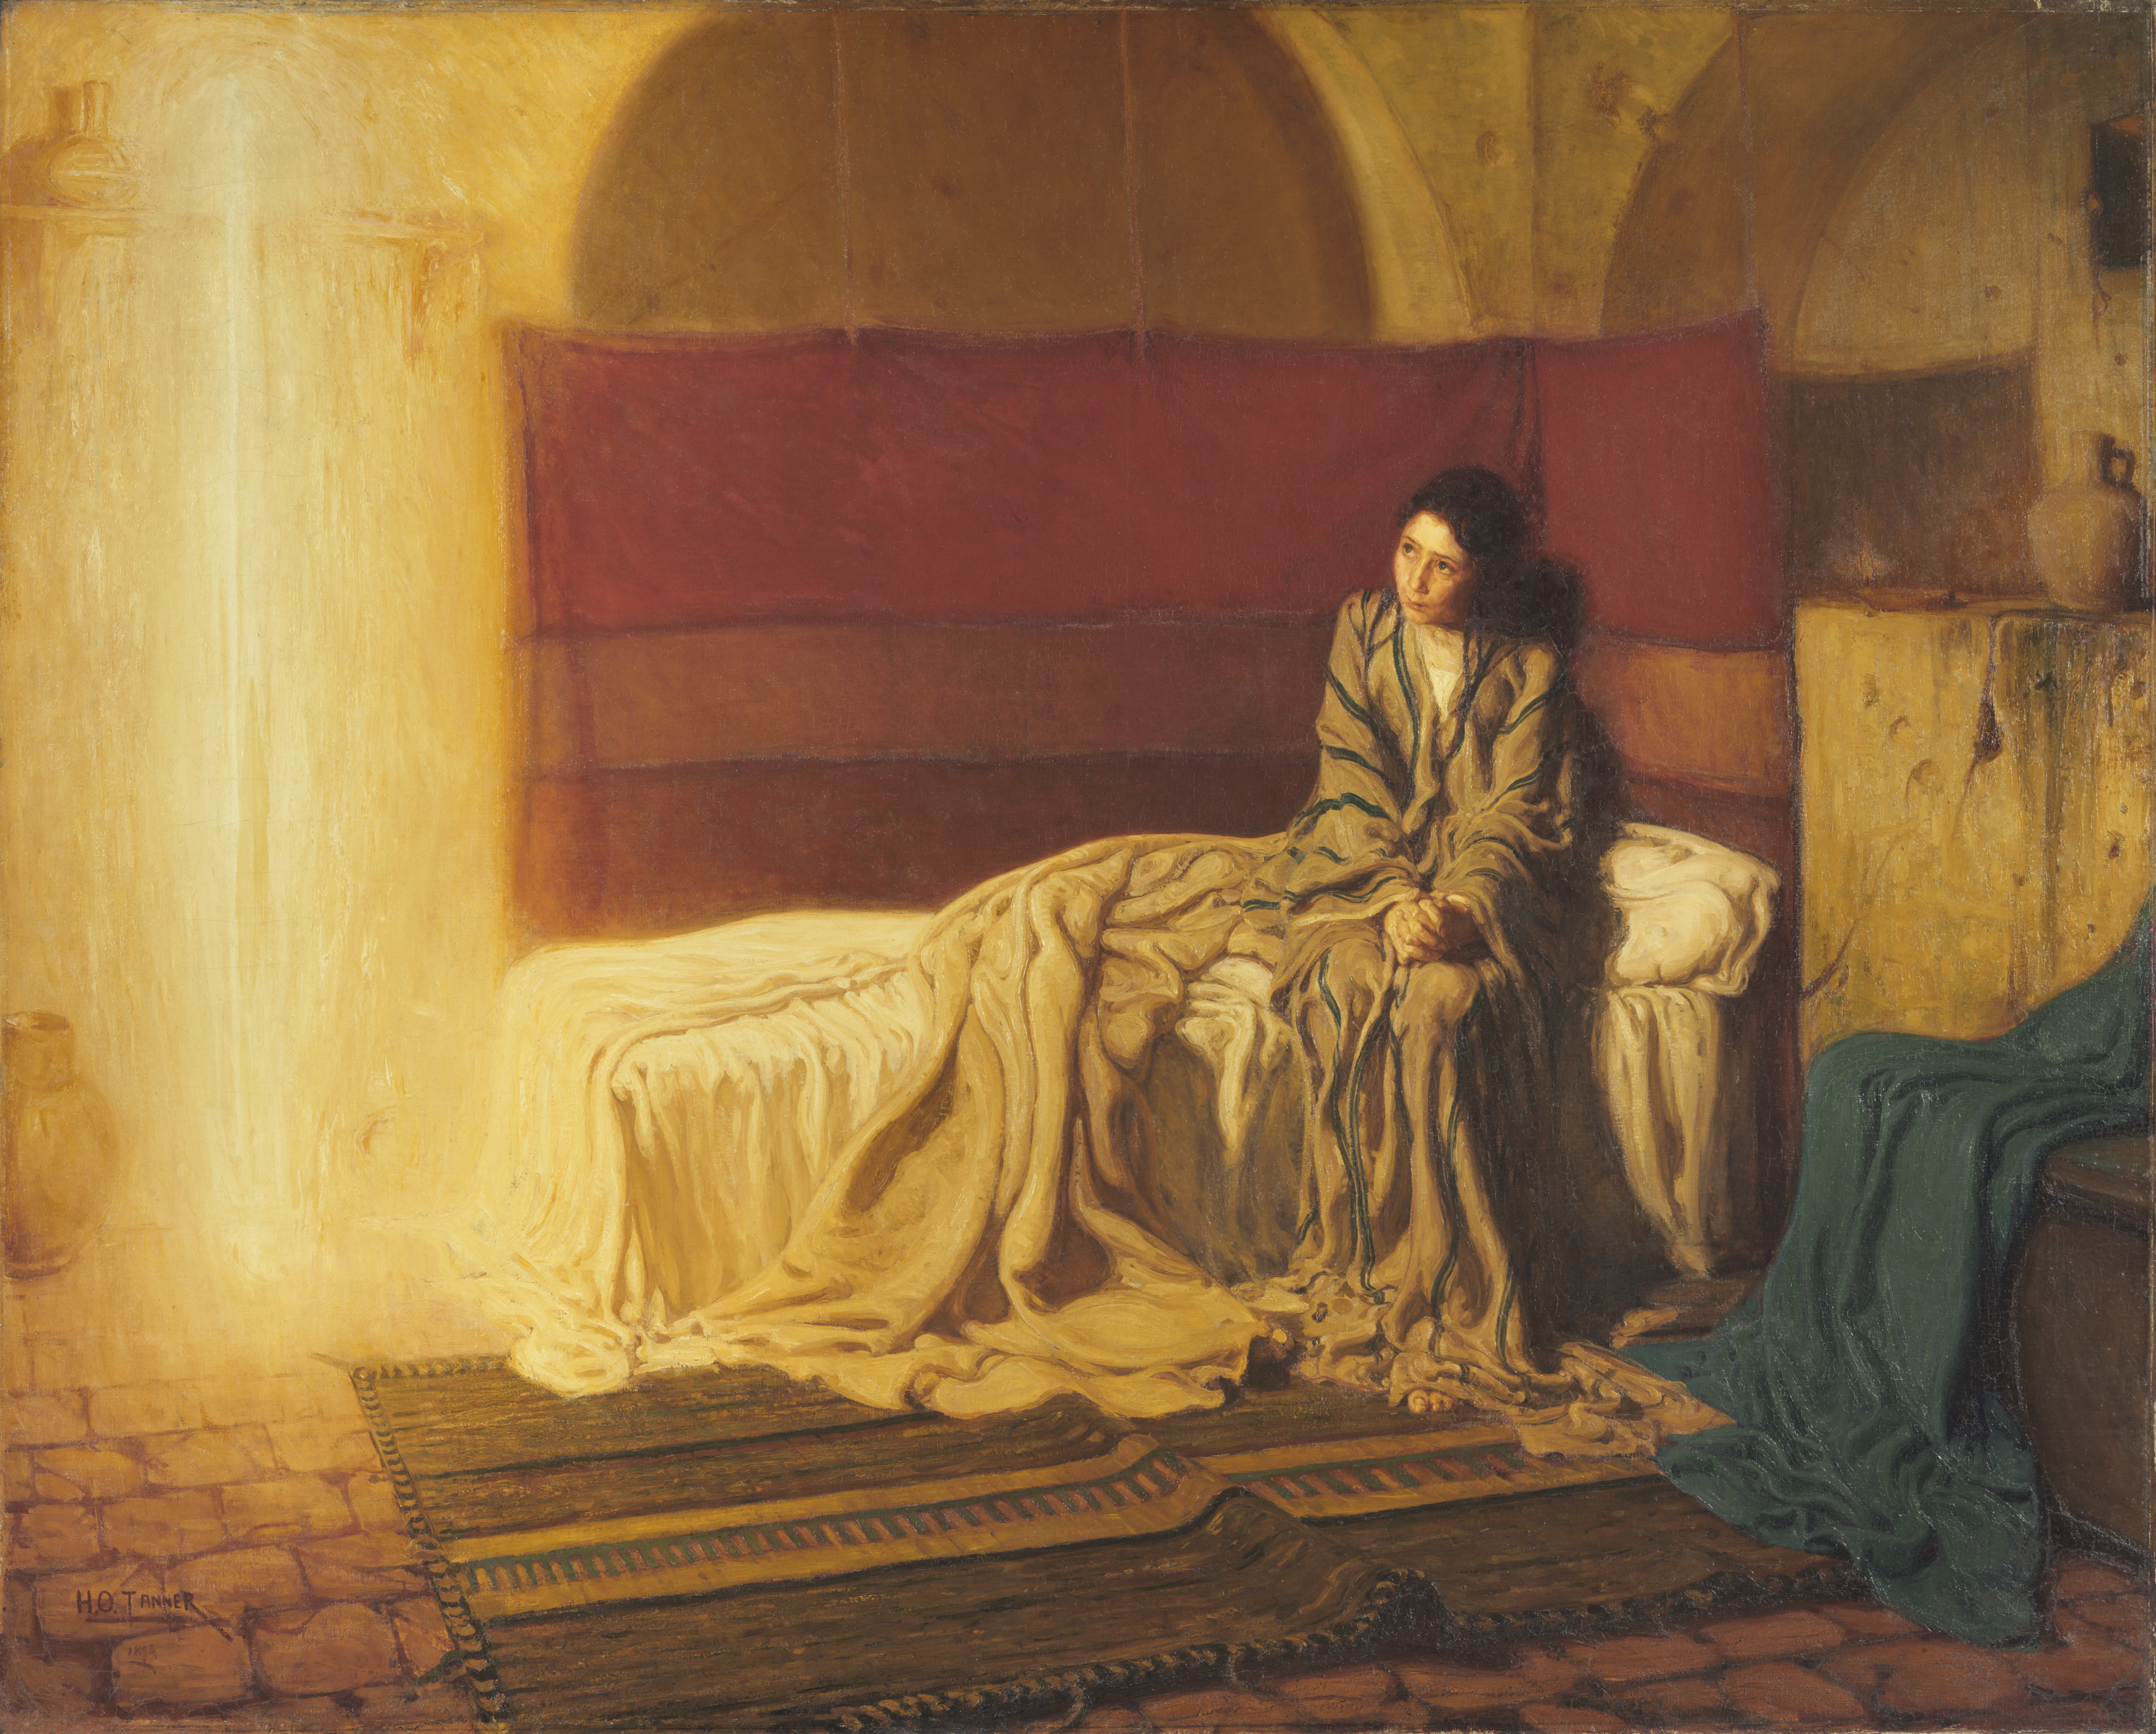 The Annunciation, 1898, Henry Ossawa Tanner, American (Philadelphia Museum of Art, Purchased with the W. P. Wilstach Fund, 1899)